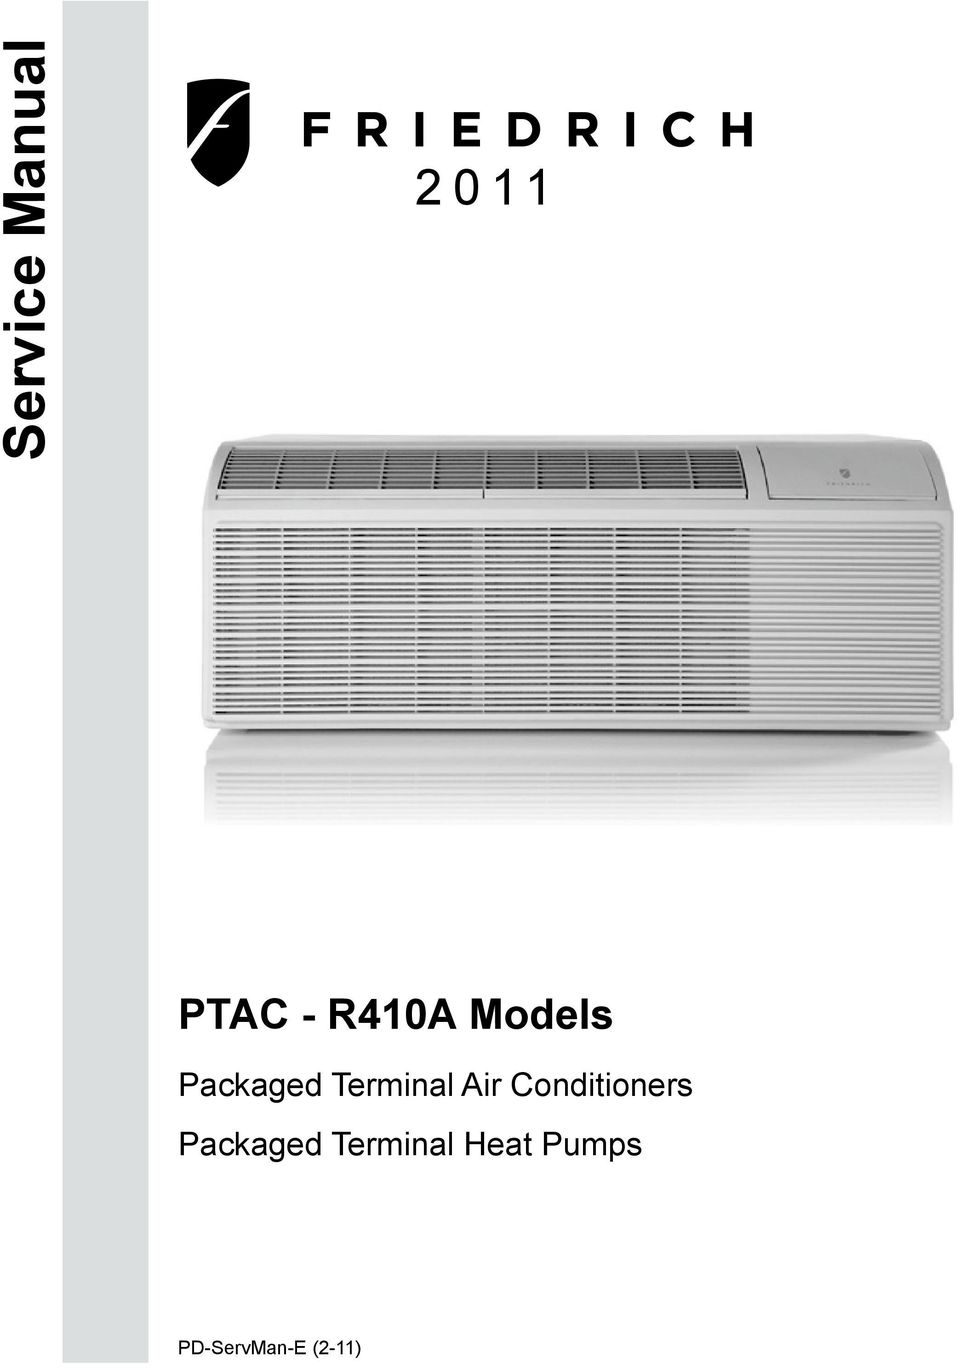 Service Manual Ptac R410a Models Packaged Terminal Air Friedrich Thermostat Wiring Diagram Conditioners